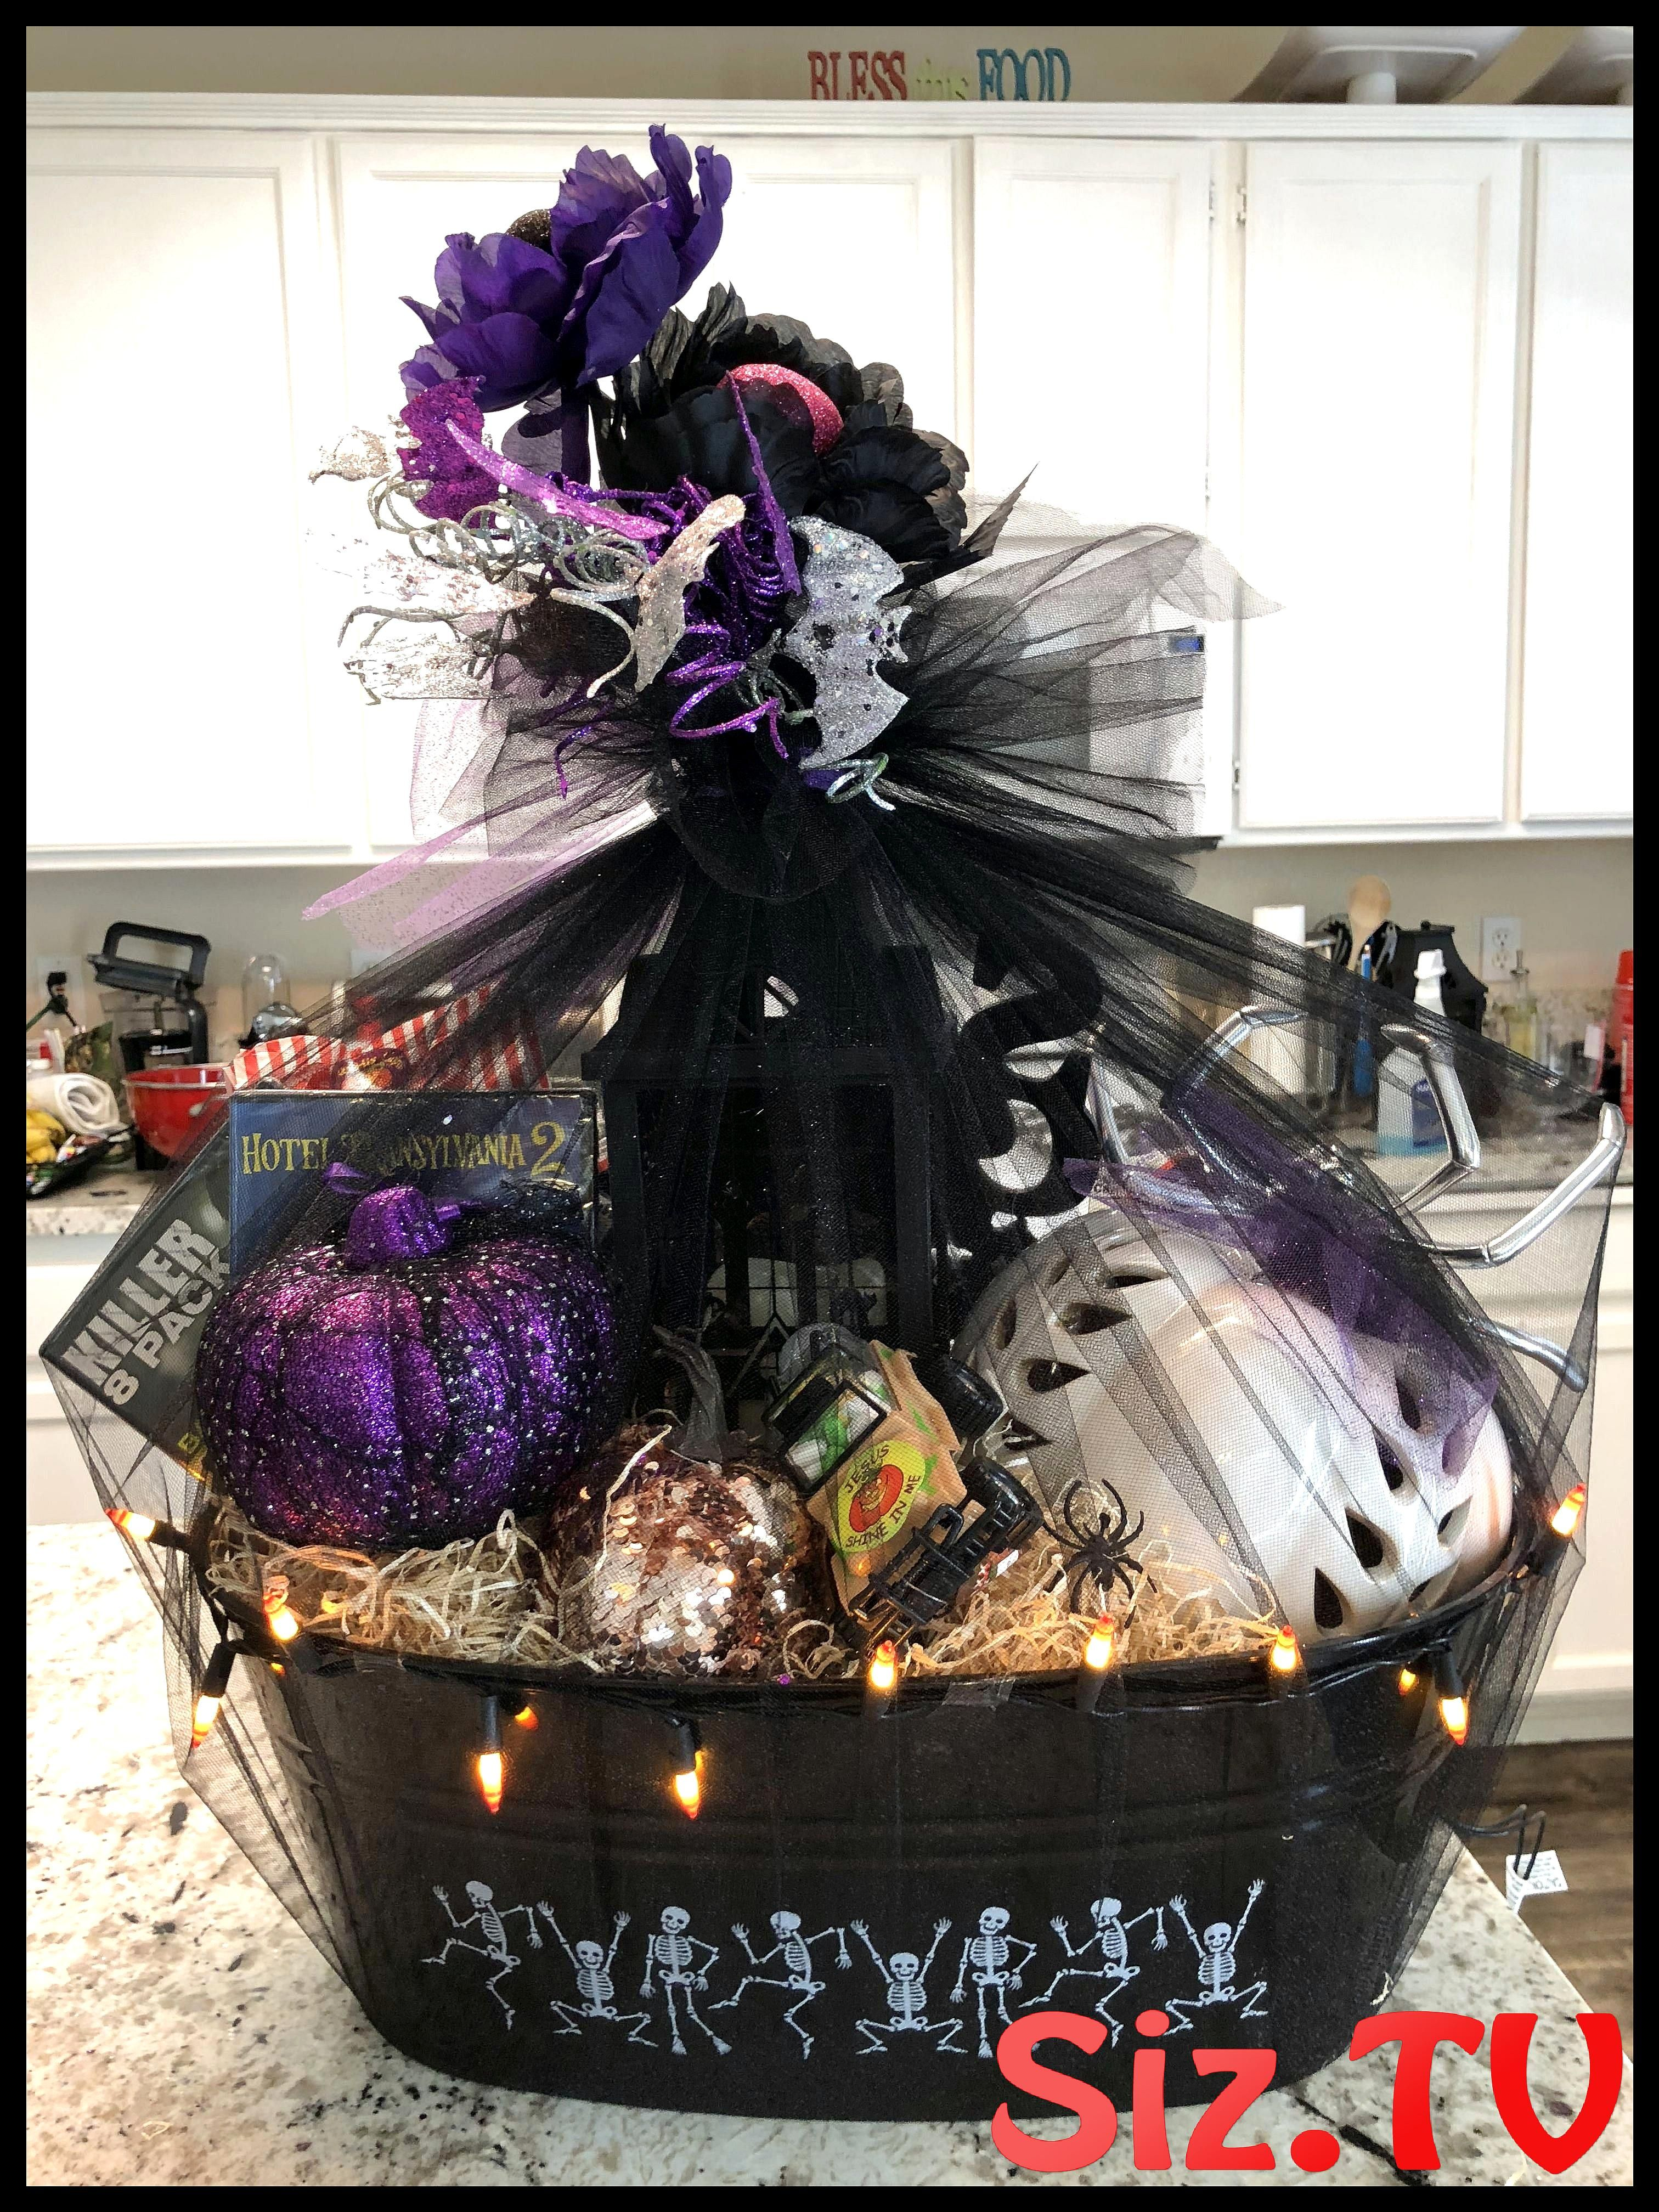 33 Halloween Gift Basket Ideas For Adults Be Given To Your Loved Ones 33 Halloween Gift Basket Ideas For Adults Be Given To Your Loved Ones Halloween Gift Basket Ideas For Adult Everybody Knows That Halloween Is A Witch S Hectic Season And We Don T Desire Any Of Those Great #halloweenaestheticboy #halloween #gift #basket #ideas #adults #given #your #loved #ones #adult #everybody #knows #that #witch #hectic #season #desire #those #great #witches #begin #homemade #halloweenday #halloweenparty #boyfriendgiftbasket